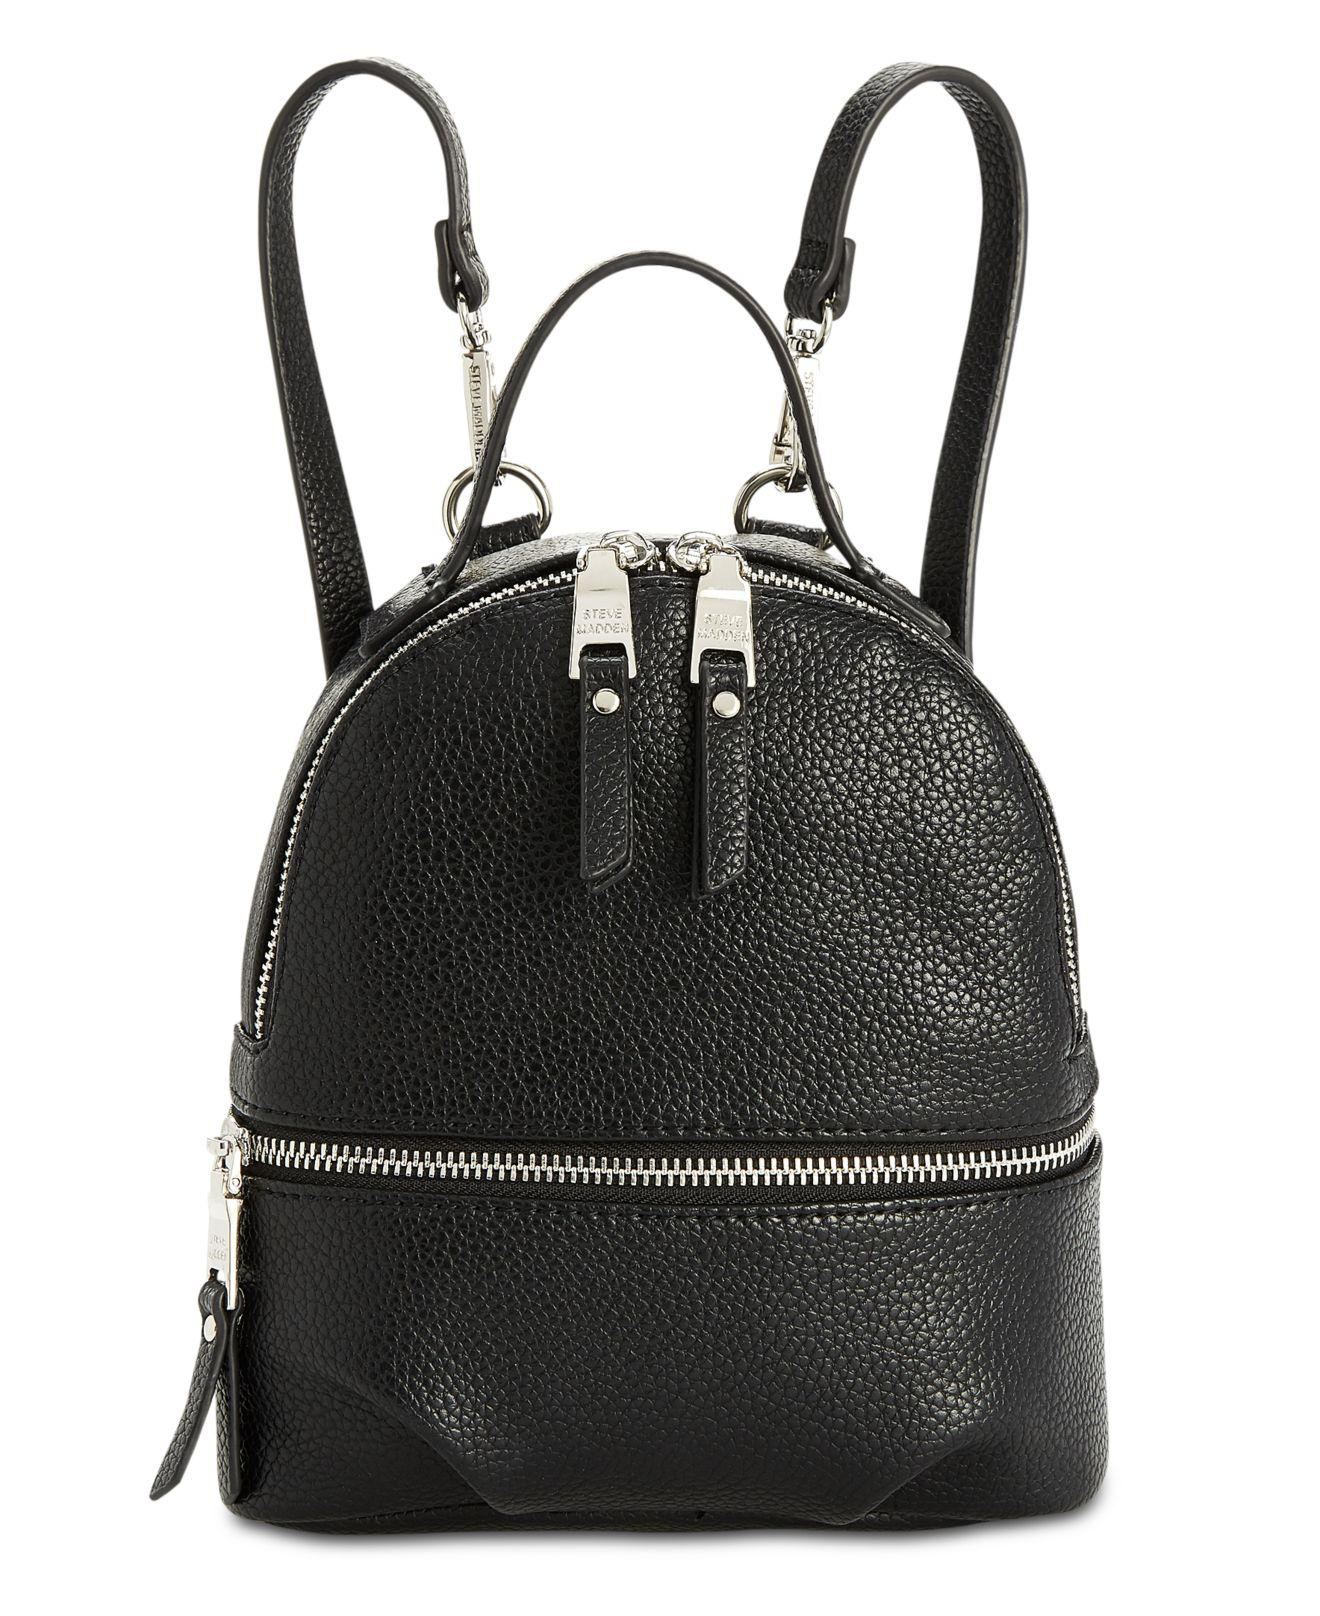 411c04426bf Steve Madden Womens Backpack Purse - Best Purse Image Ccdbb.Org